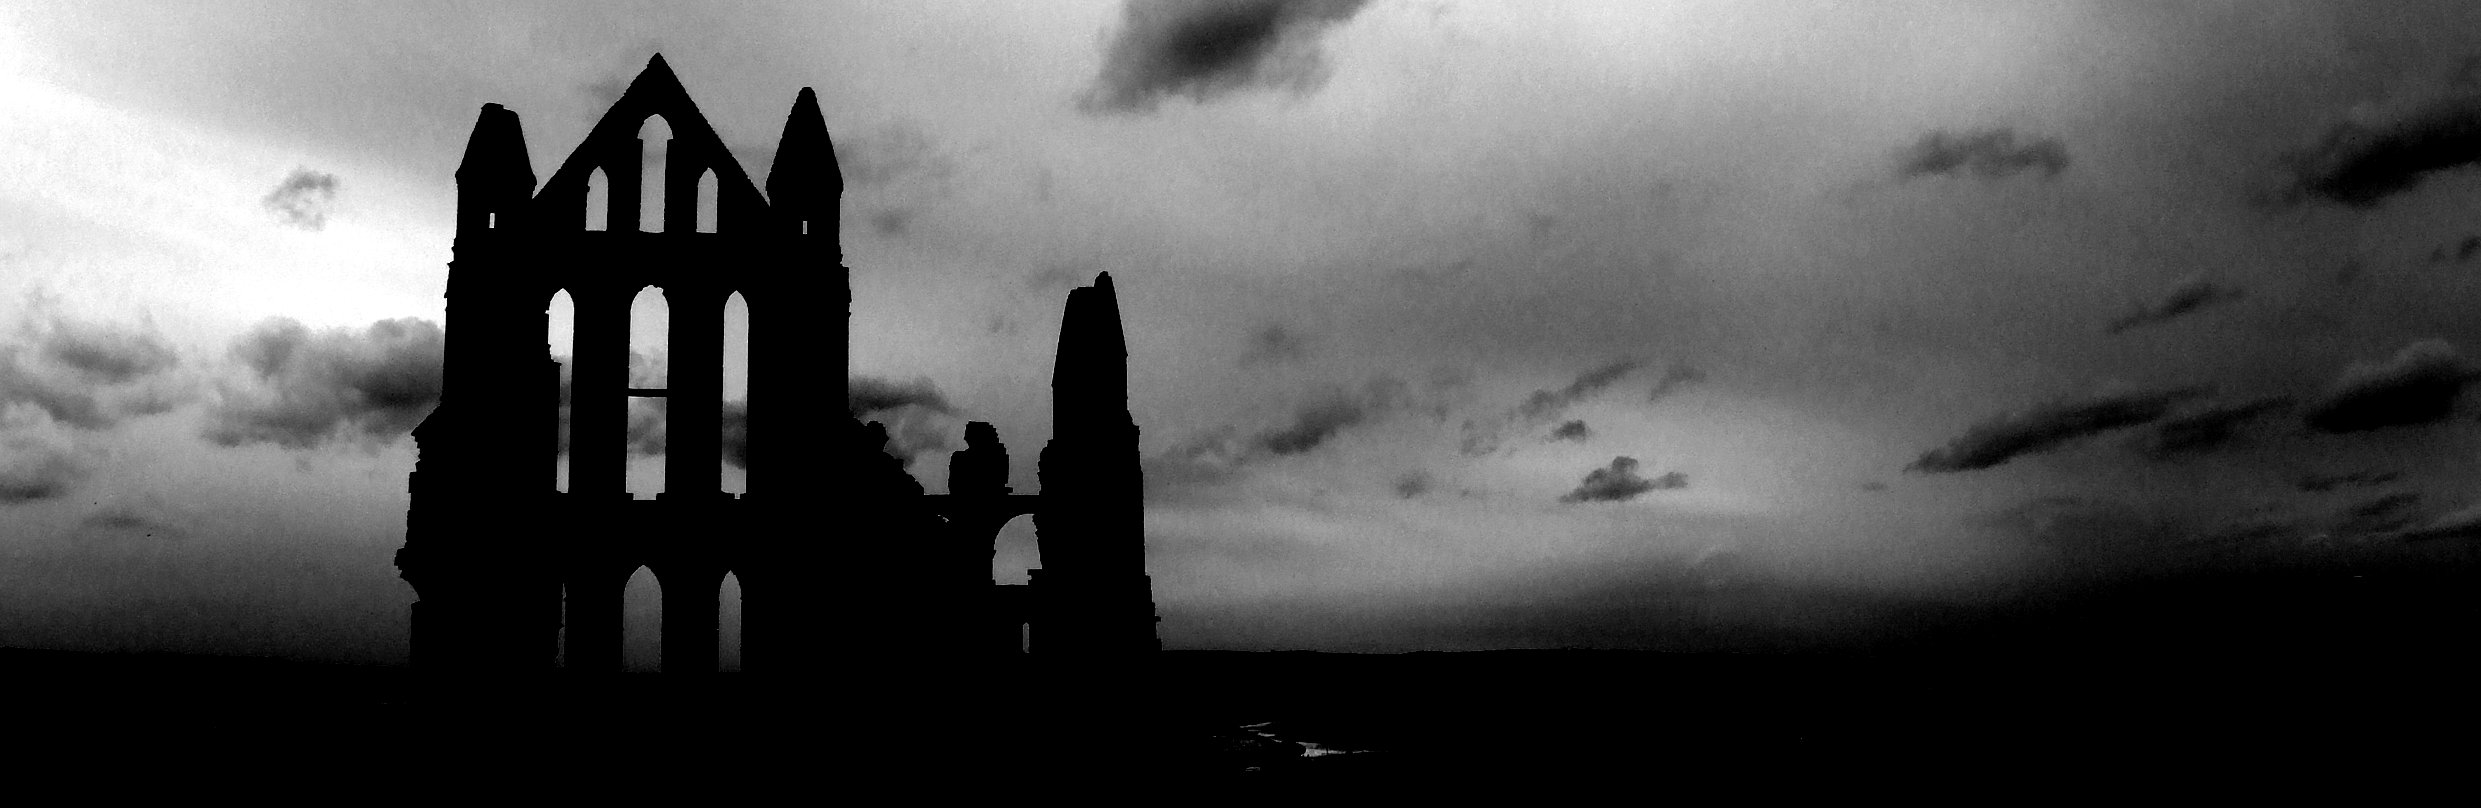 28-31 October: Whitby Gothic Weekend (WGW) - Hello Yorkshire